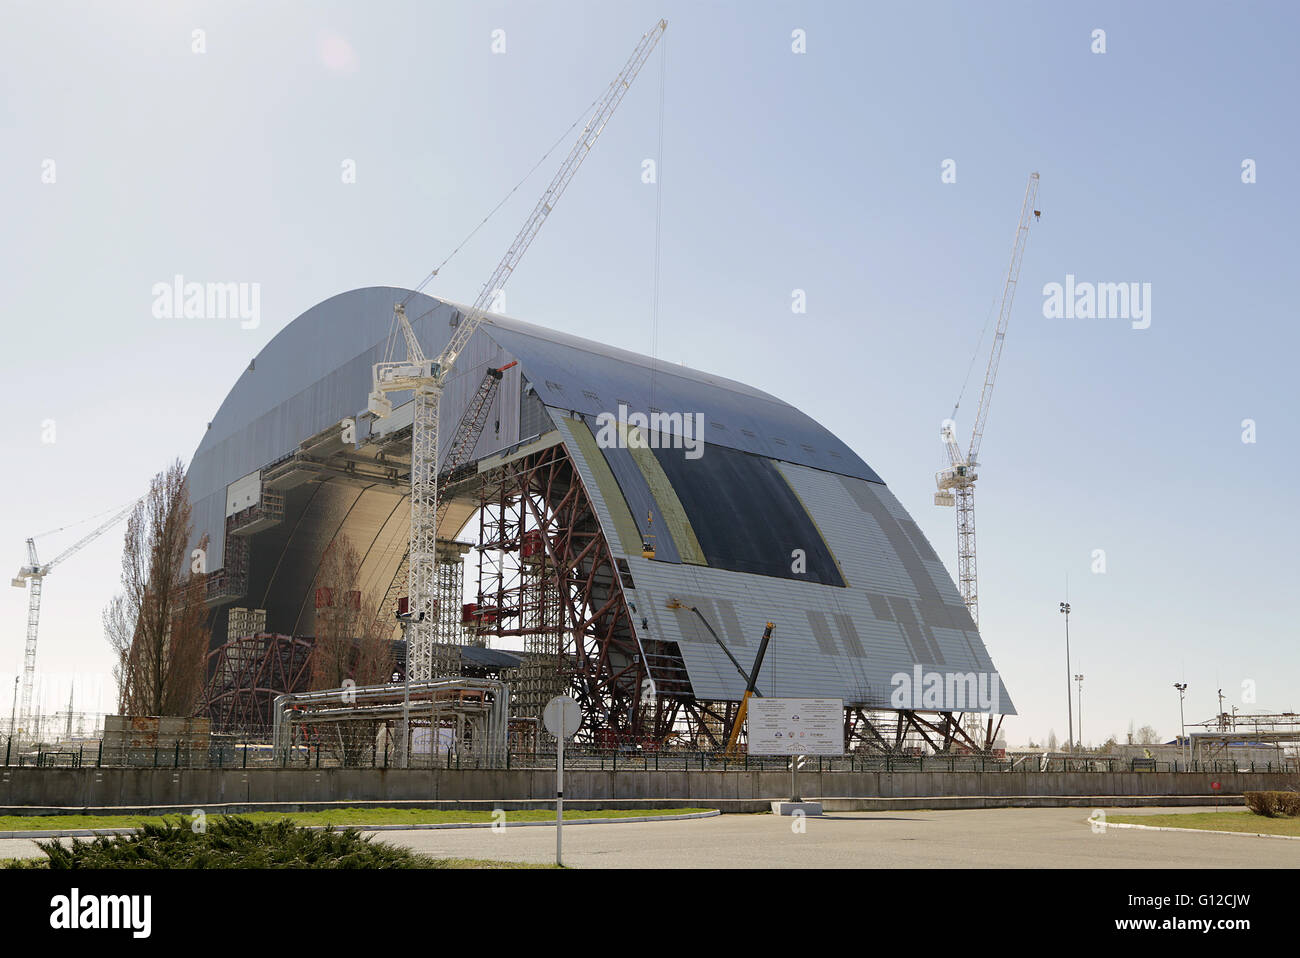 Construction of new Sarcophagus - Status 29th March 2014 - Stock Image